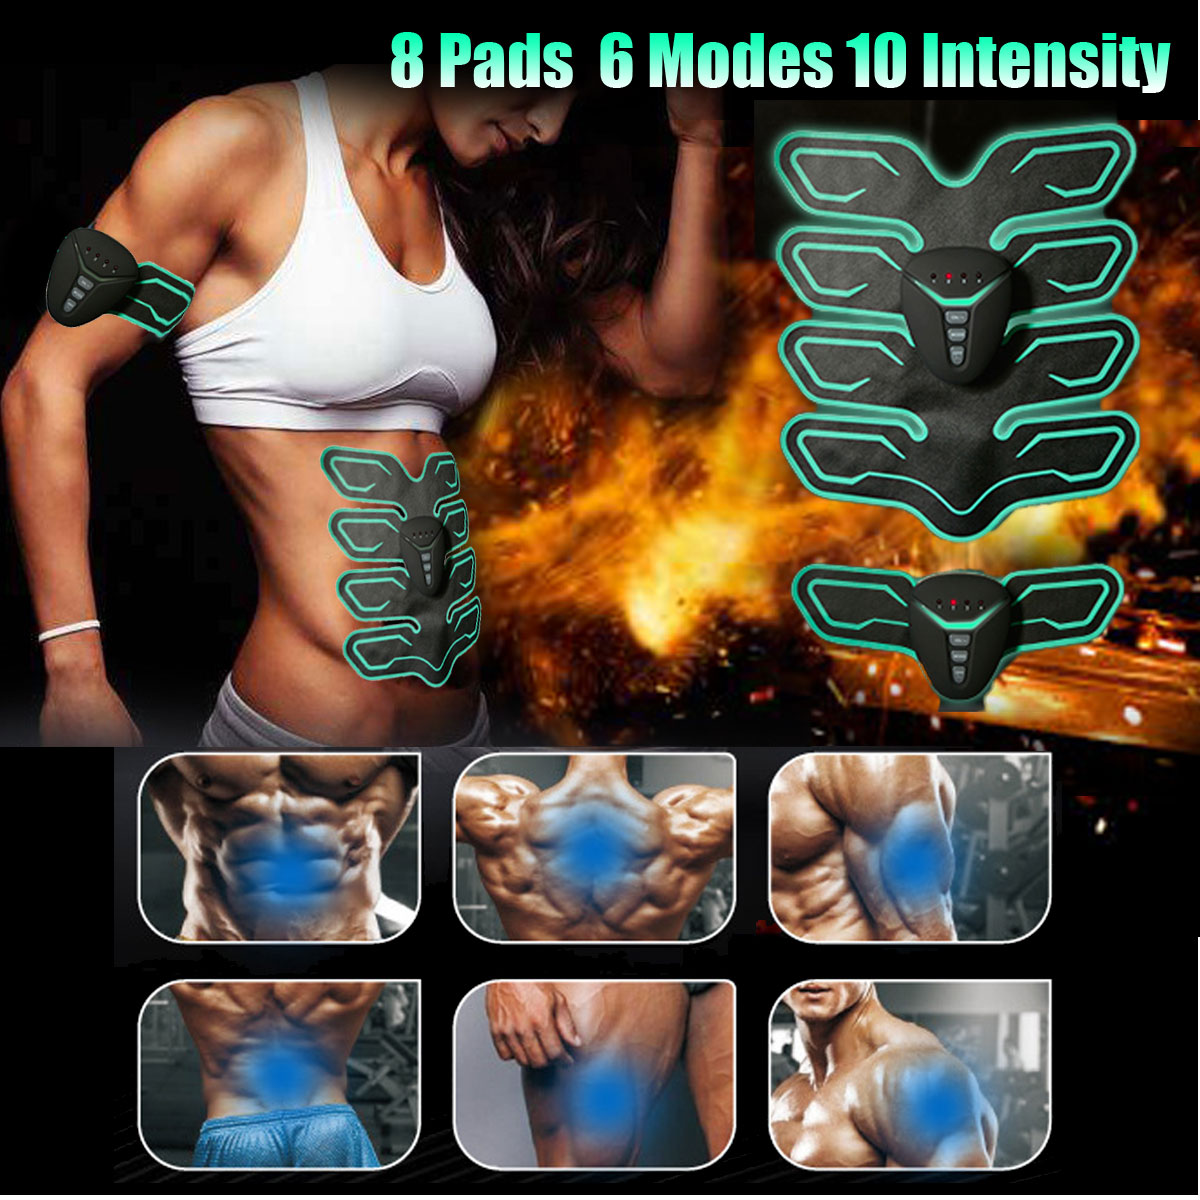 KIFIT 6 Mode 10 Intensity 8 Pads Muscle Training Gear Body Shape Fitness Exercise Set Electric Weight Loss Slimming Massager